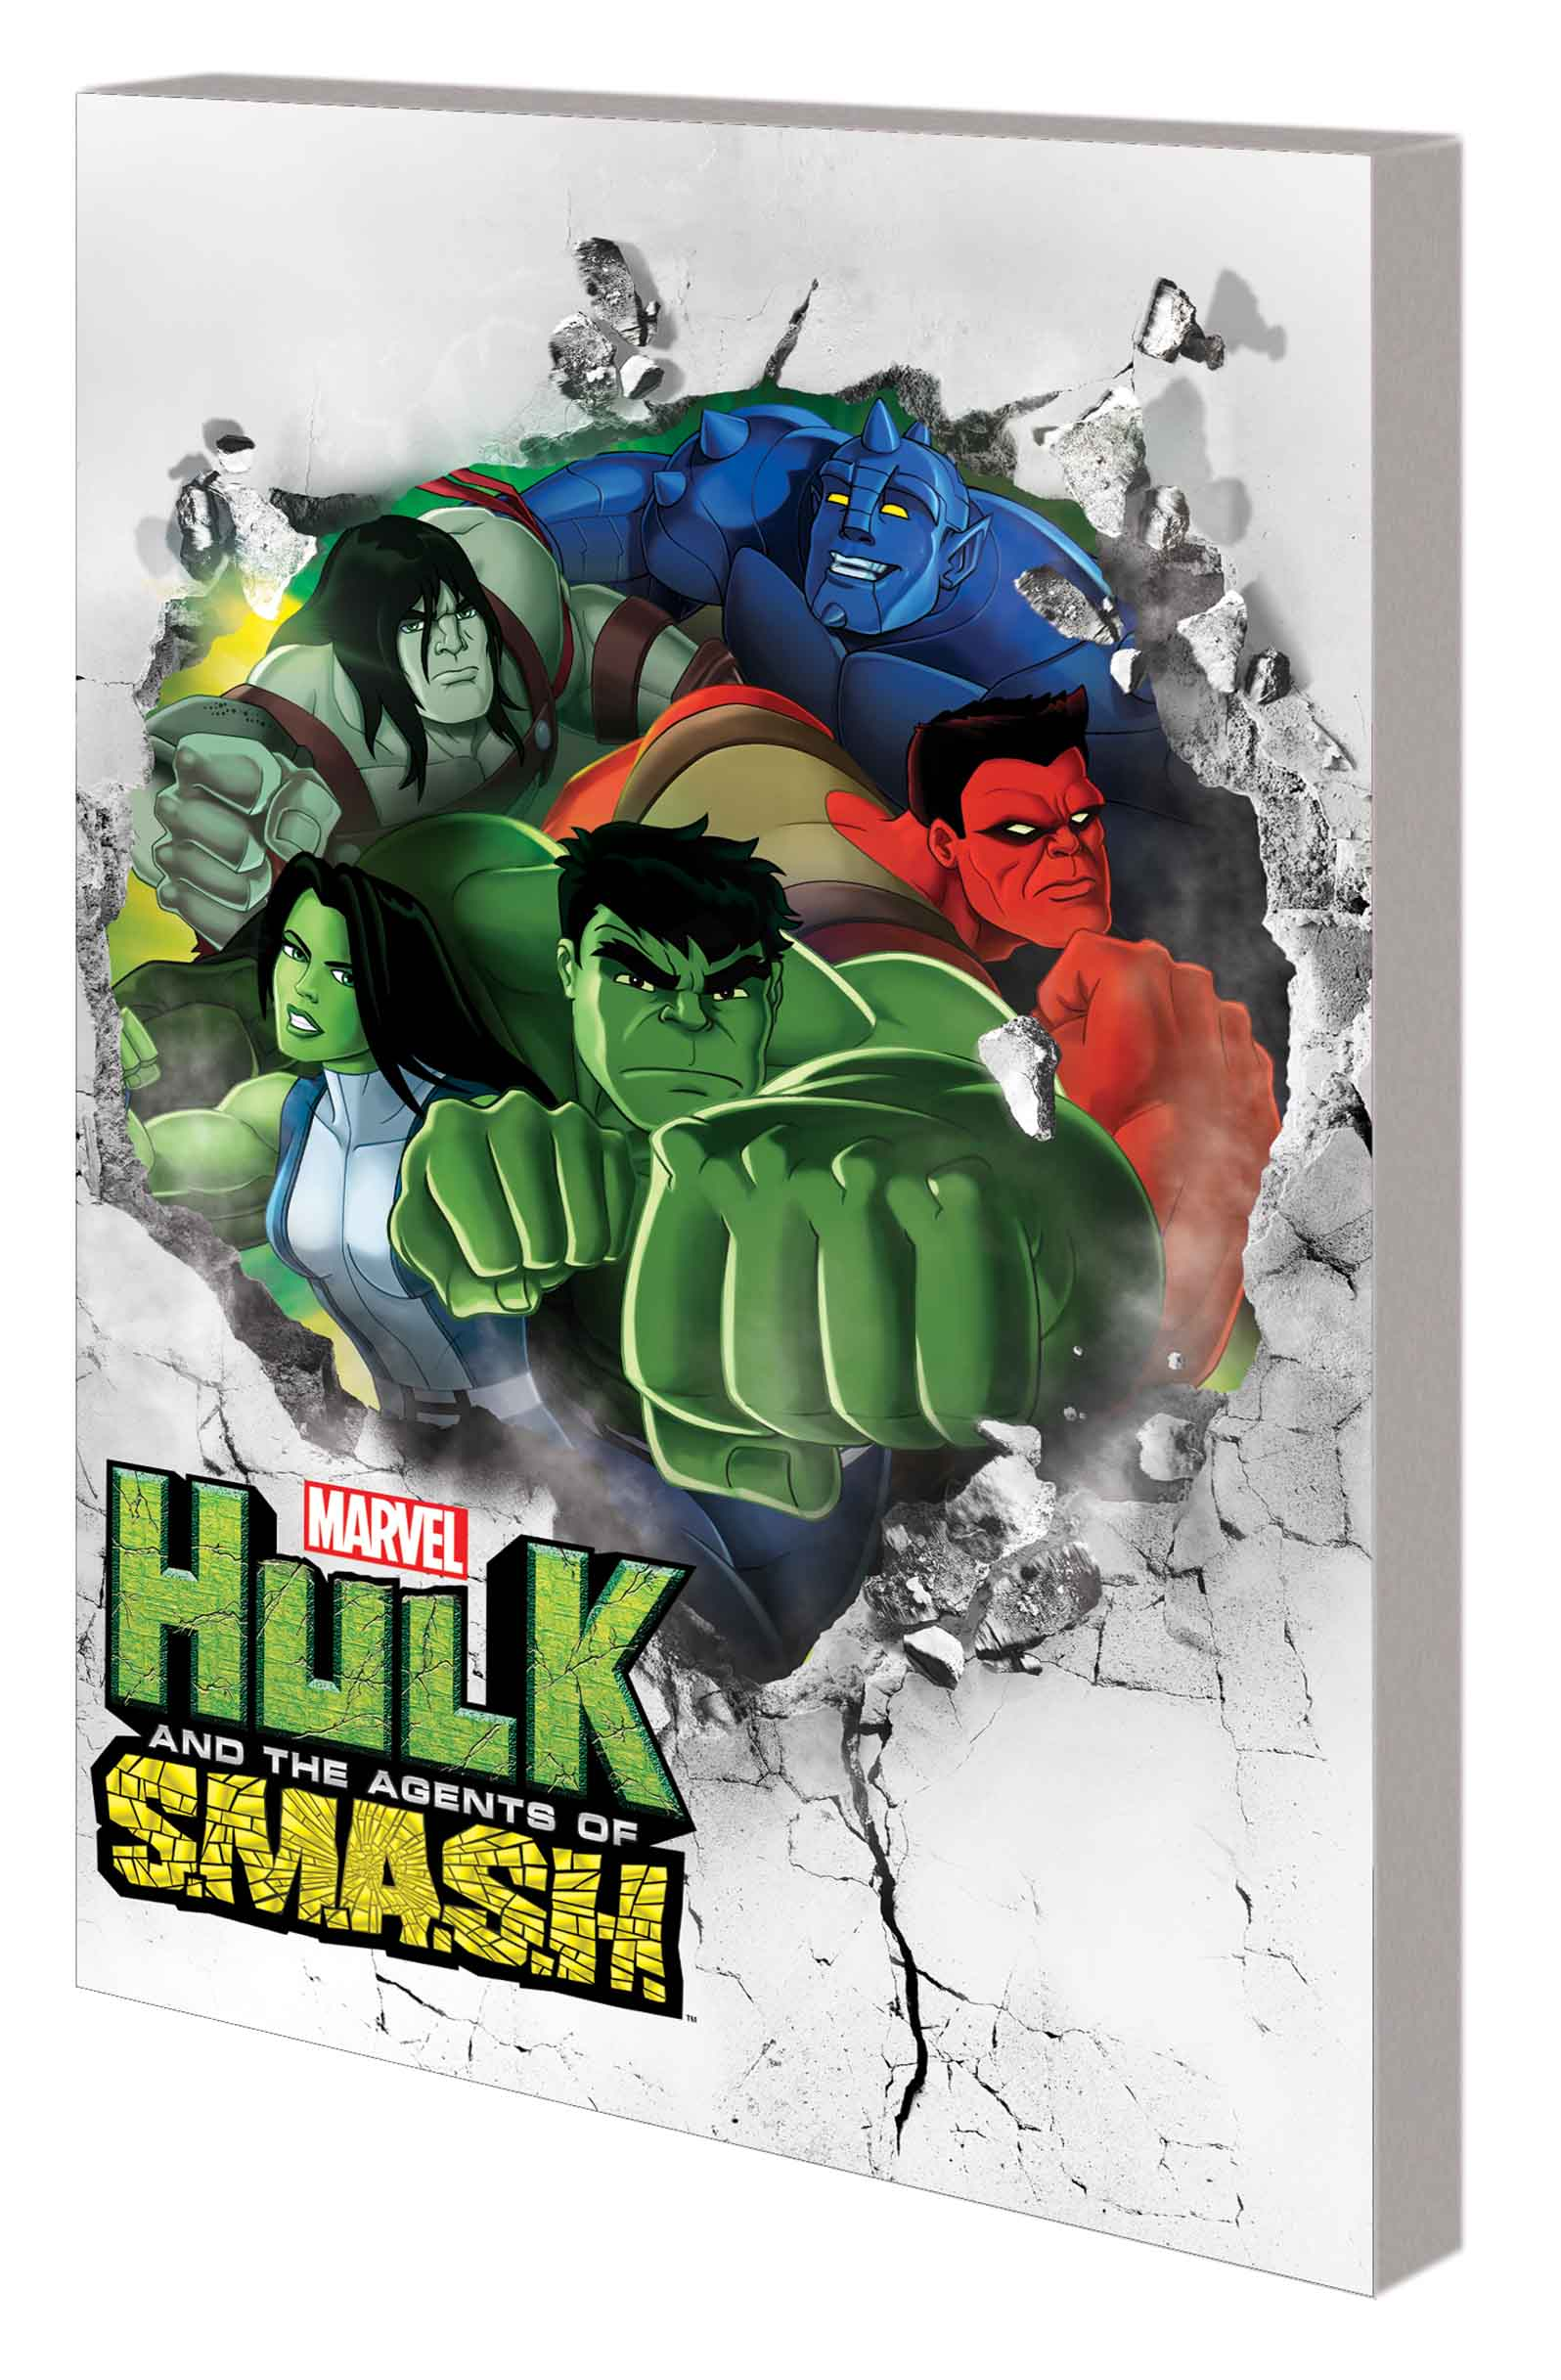 MARVEL UNIVERSE HULK: AGENTS OF S.M.A.S.H. DIGEST (Digest)